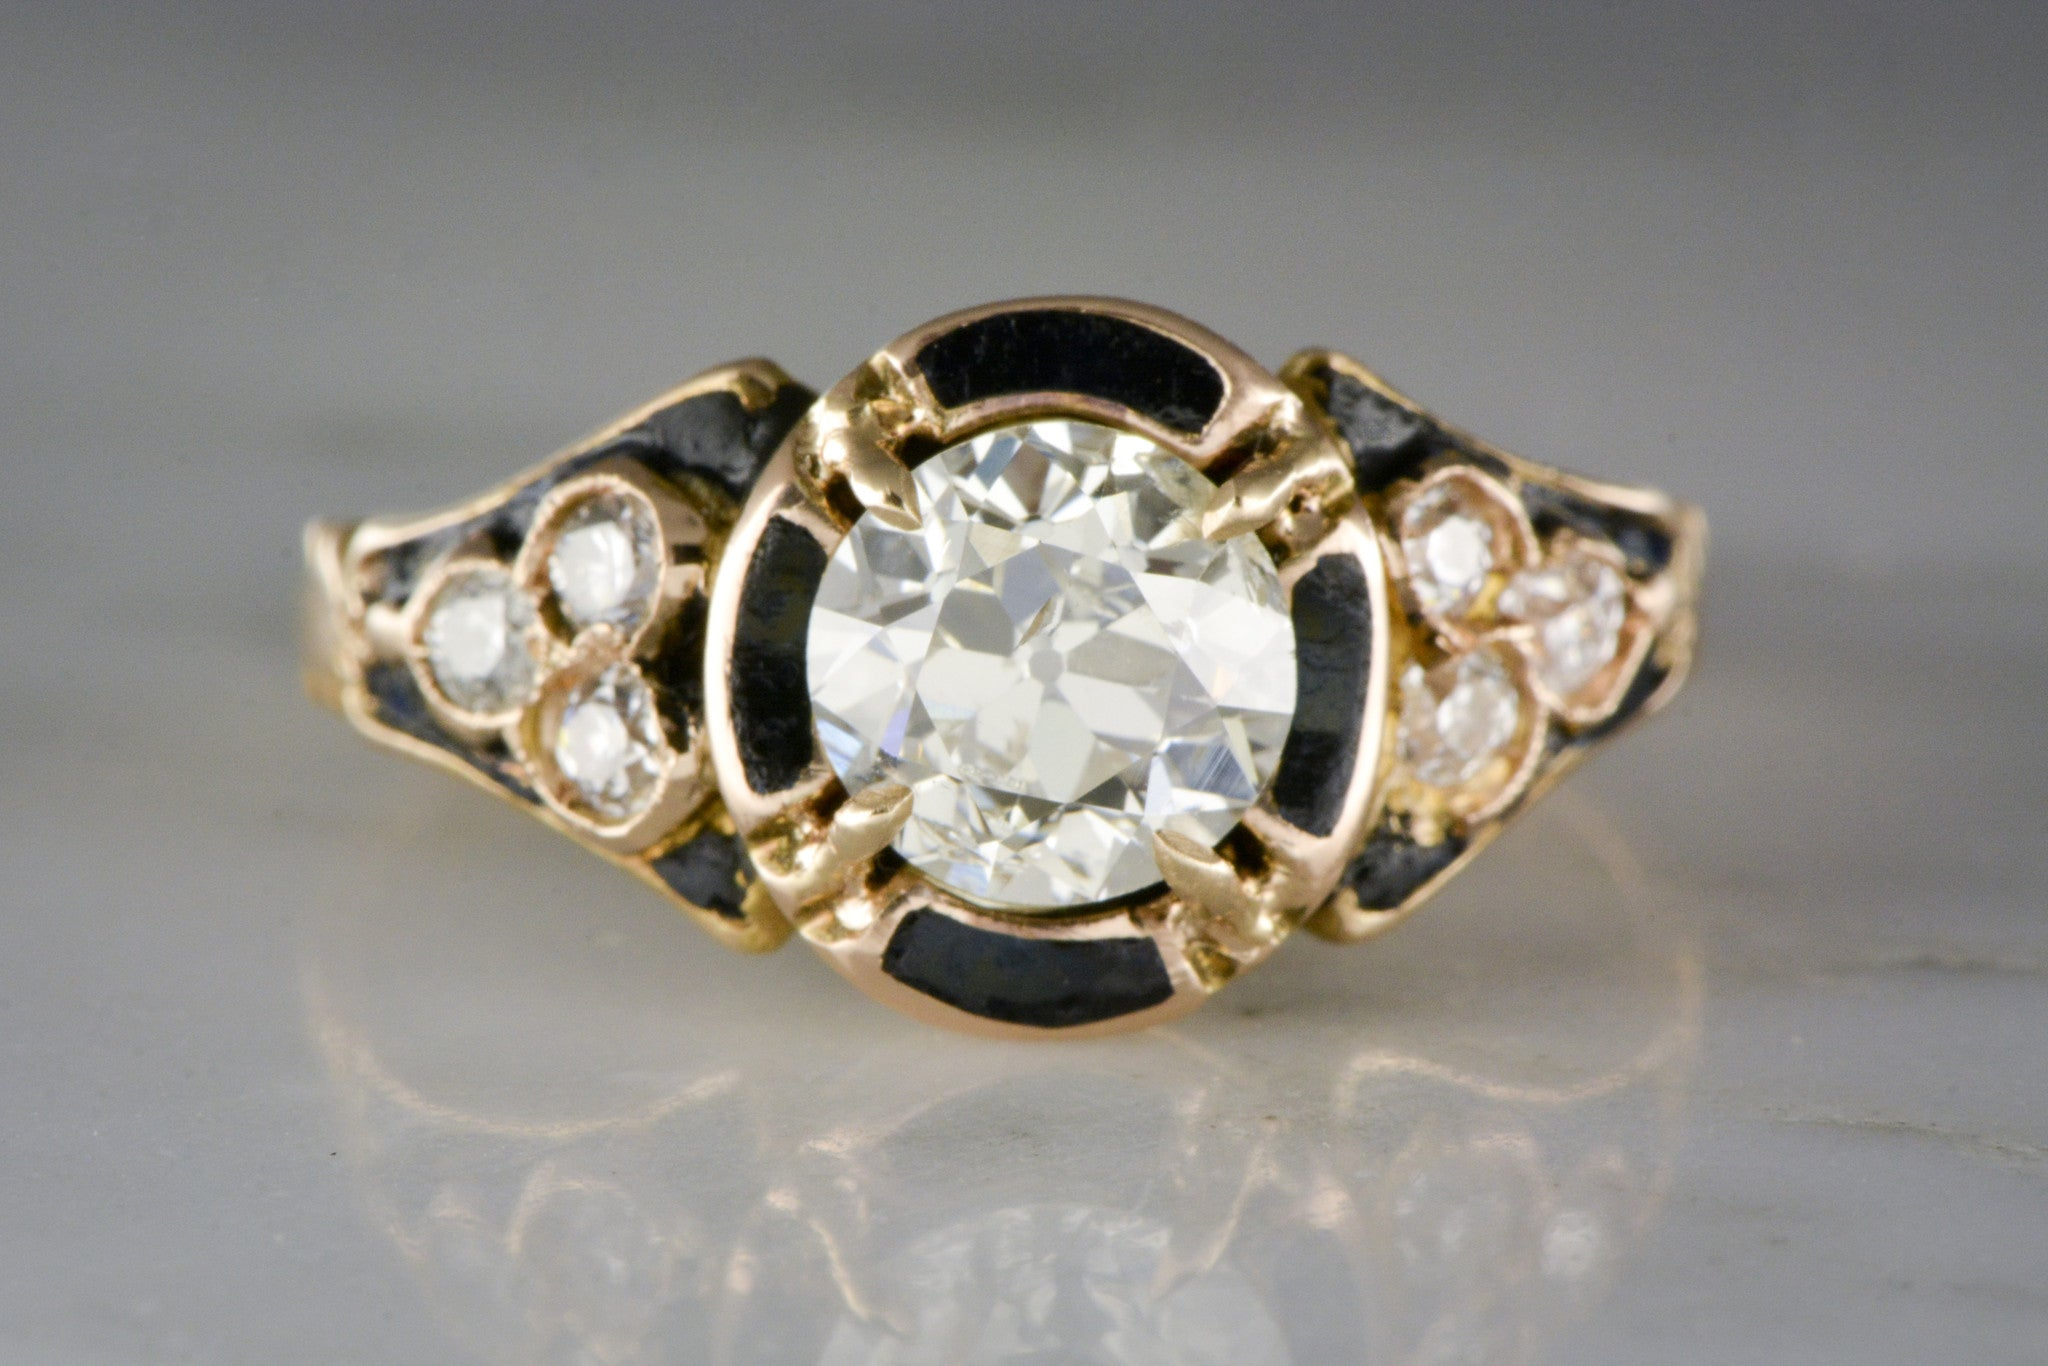 ecuatwitt vintage unique macys right contemporary ring hand diamond rings